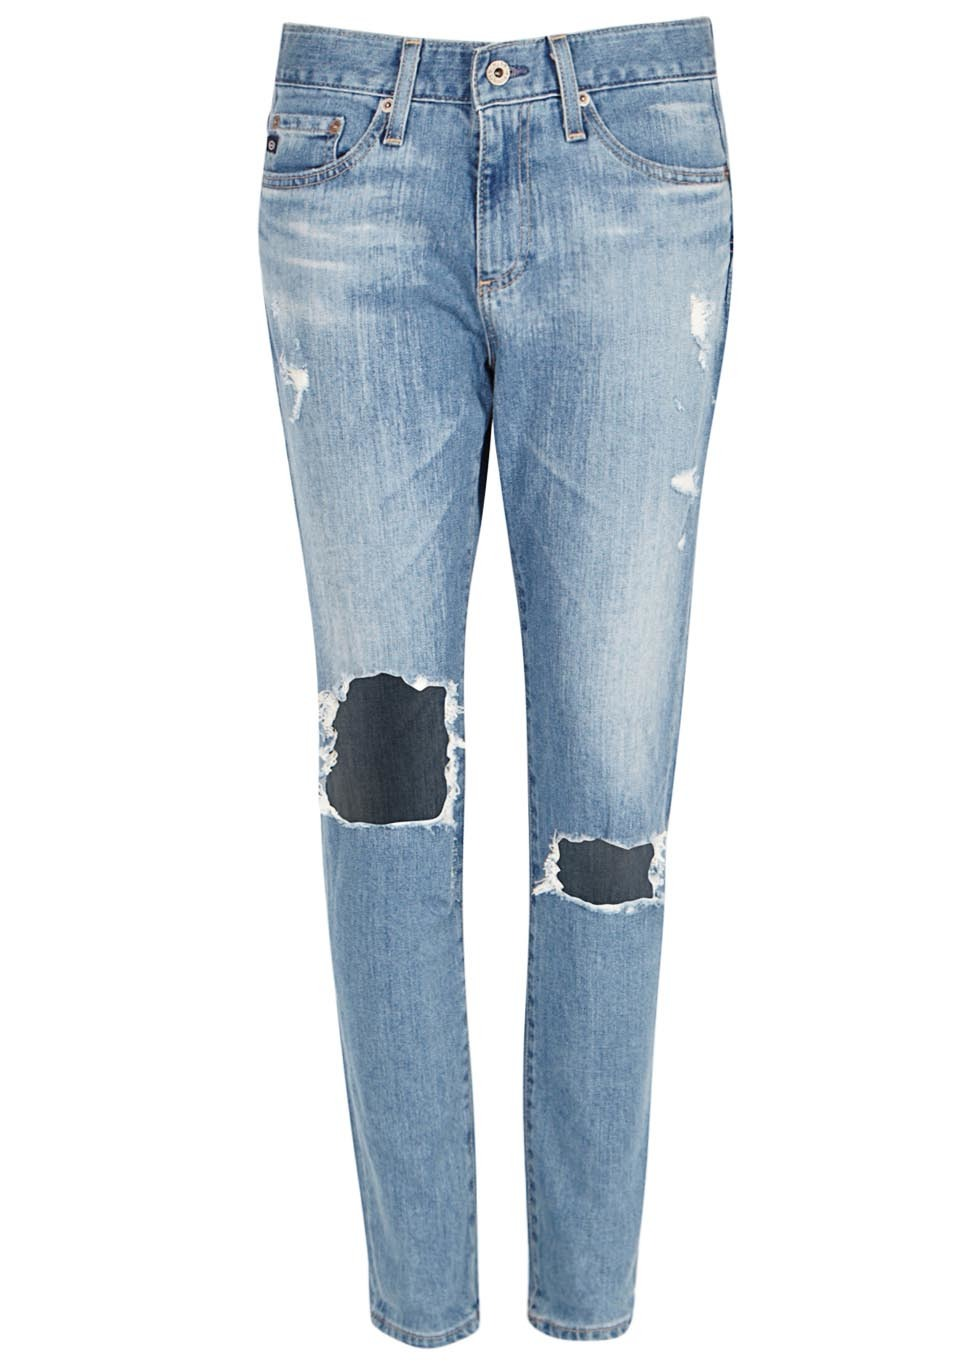 Beau Blue Distressed Slim Boyfriend Jeans - length: standard; pattern: plain; pocket detail: traditional 5 pocket; style: slim leg; waist: mid/regular rise; predominant colour: denim; occasions: casual; fibres: cotton - stretch; jeans detail: shading down centre of thigh, washed/faded, rips; texture group: denim; pattern type: fabric; season: a/w 2015